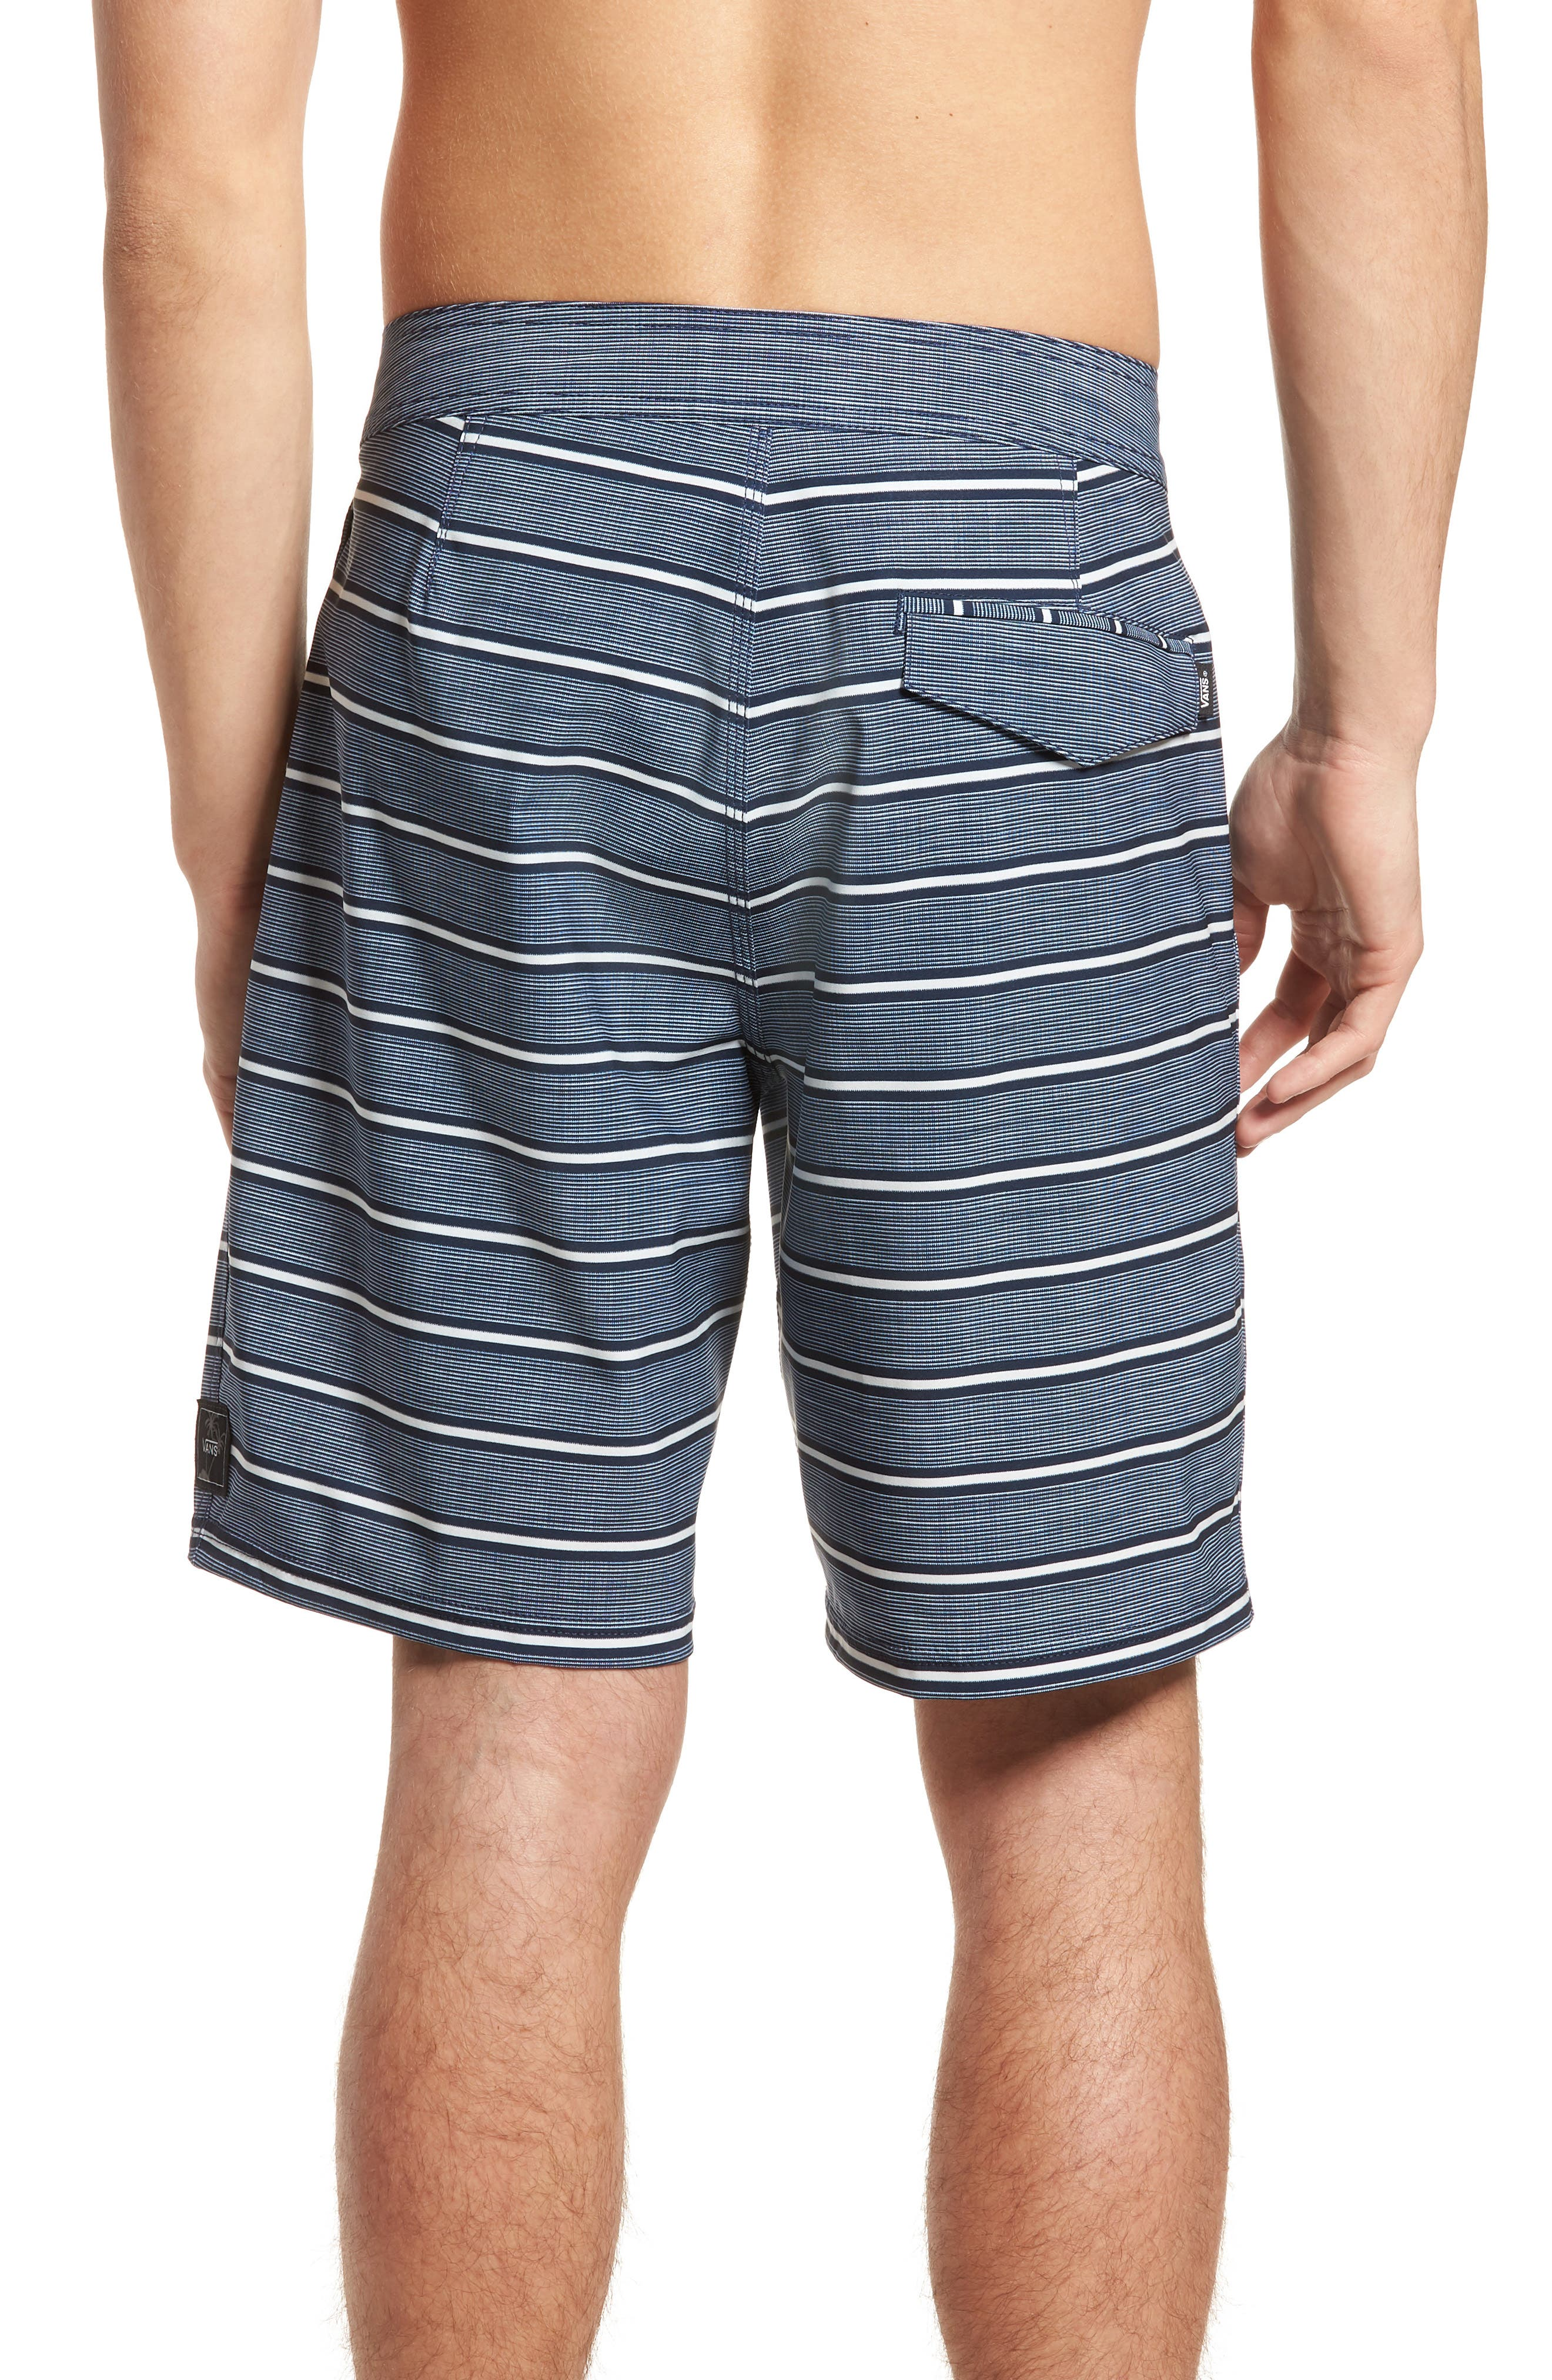 Rooftop Board Shorts,                             Alternate thumbnail 2, color,                             401